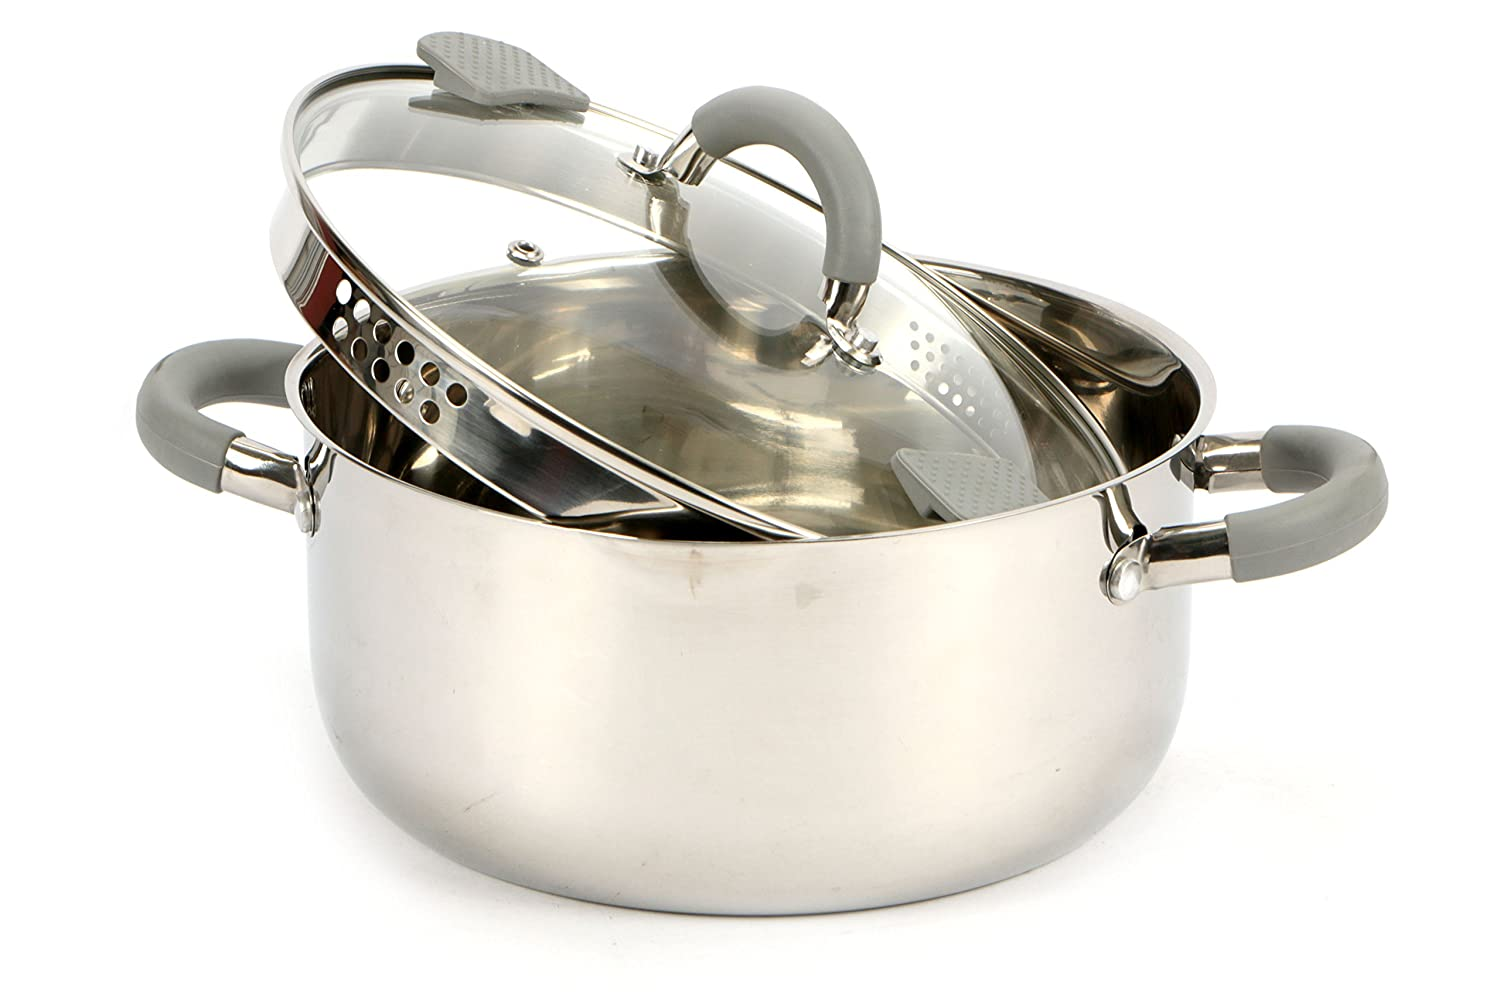 Imperial Stainless Steel Pasta Cooker, Stainless Steel, 26x 35x 18cm Imperial inox 41701